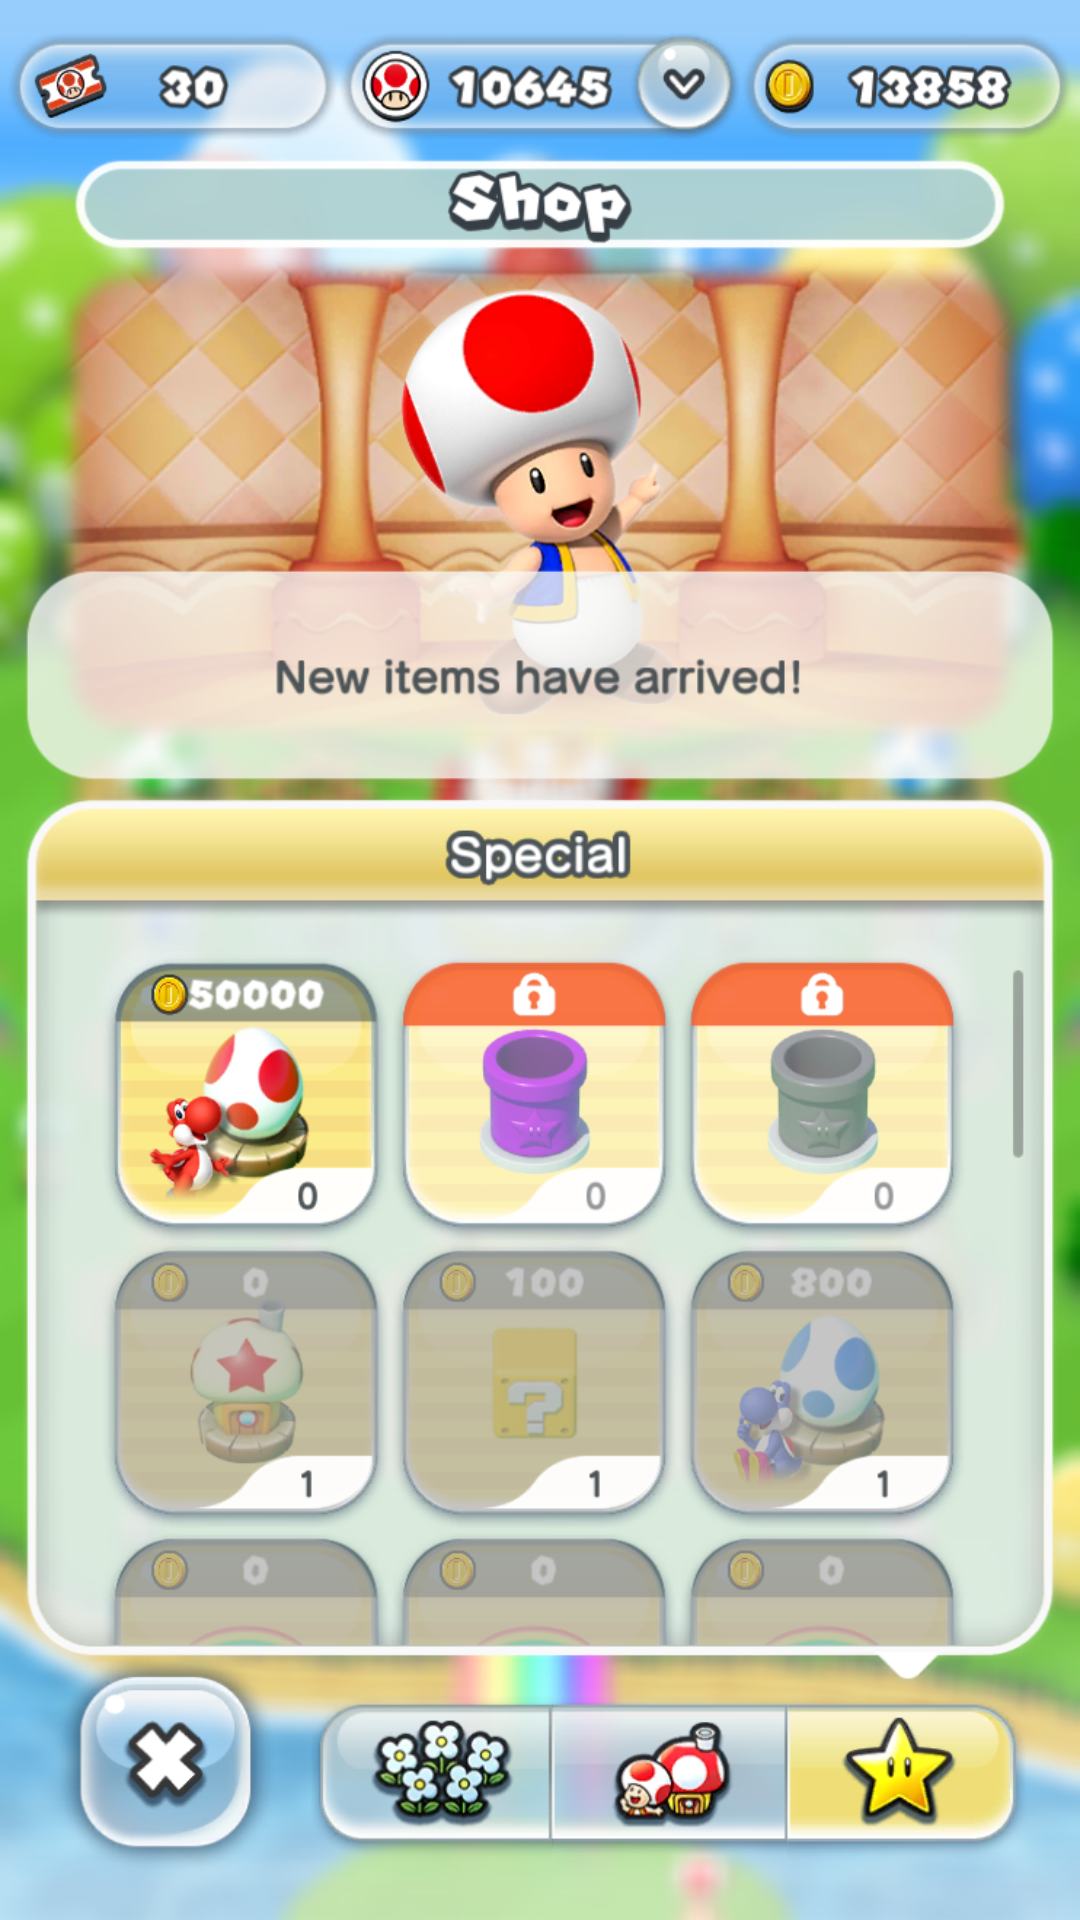 Red Yoshi is the only character I've not unlocked because the grind to get 50,000 coins is too much.